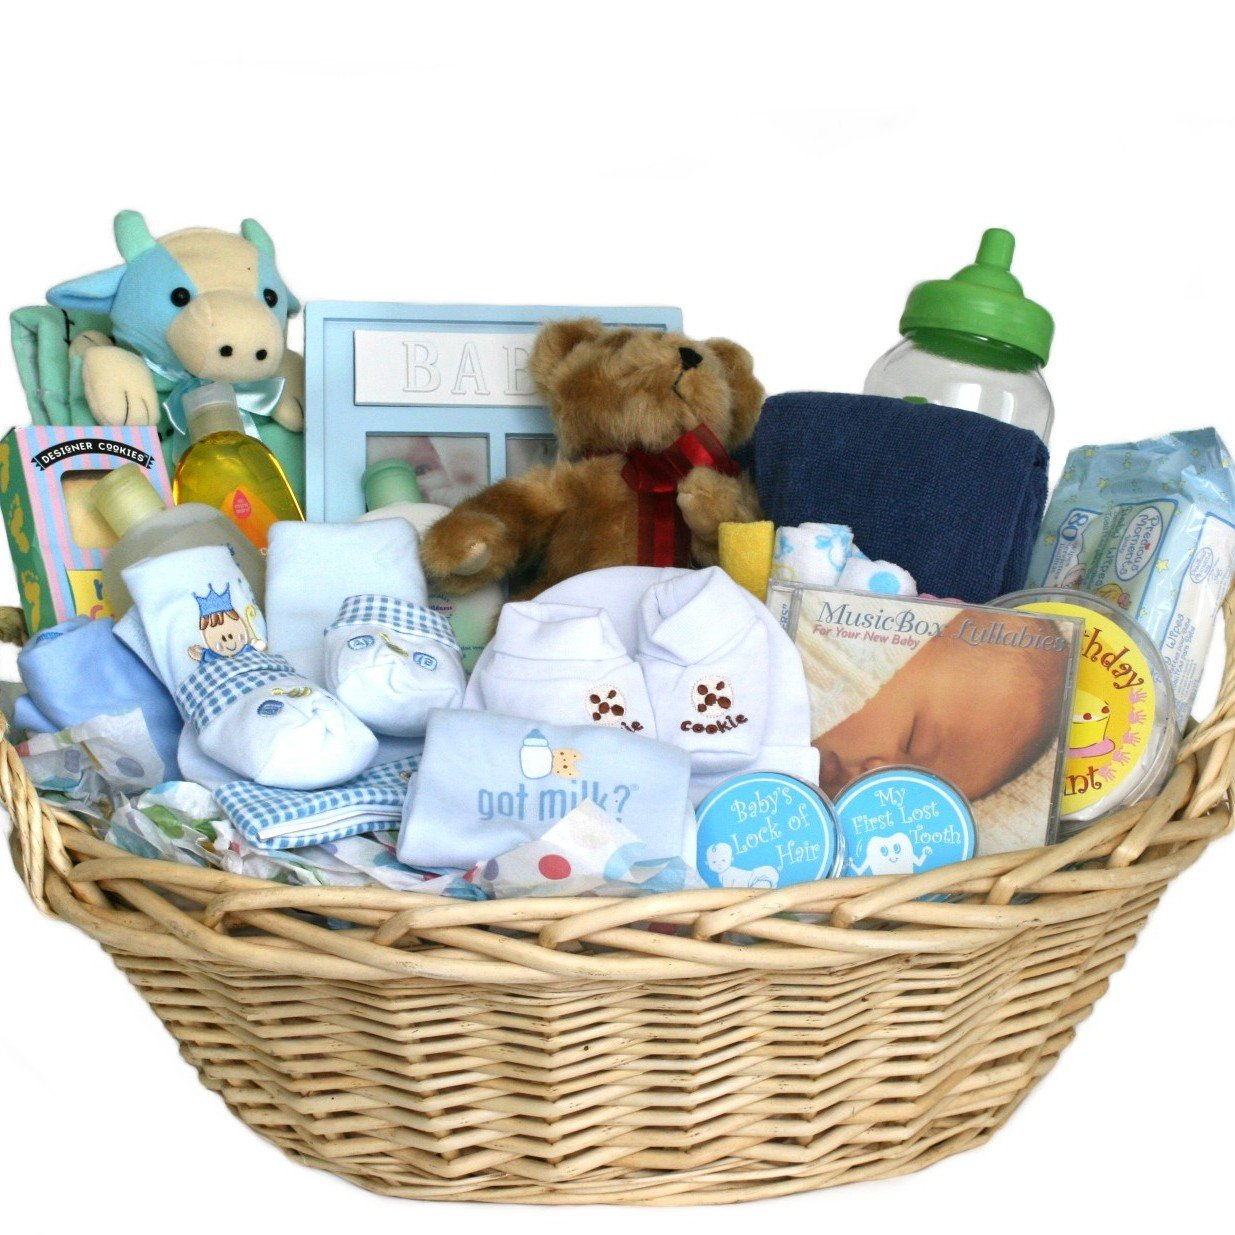 Amazon deluxe baby gift basket blue for boys great shower amazon deluxe baby gift basket blue for boys great shower gift idea for newborns baby negle Images